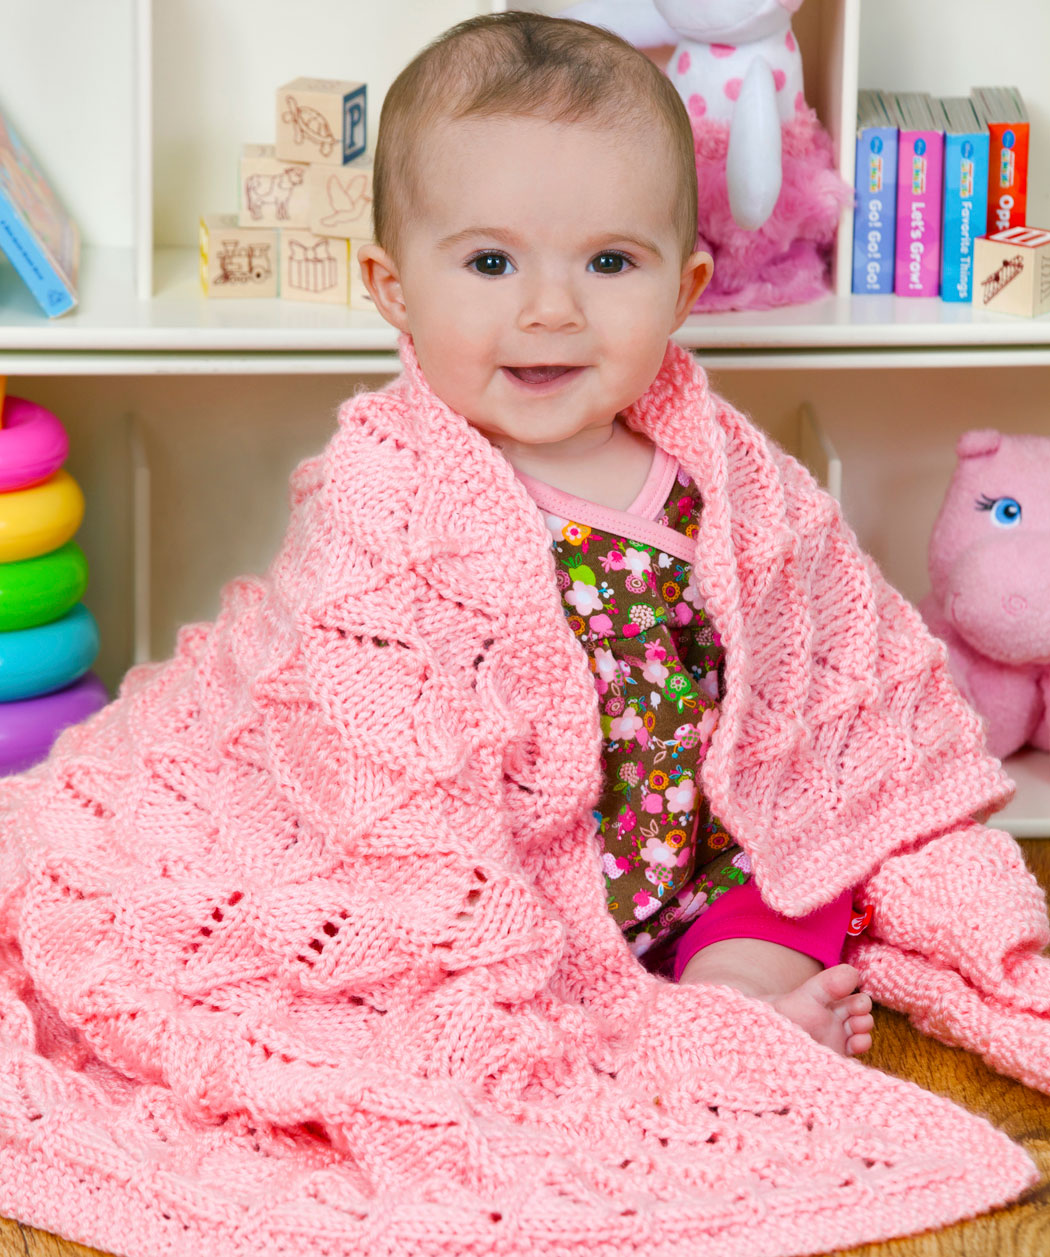 Easy Lace Baby Blanket Knitting Pattern : Knitting Patterns Baby Blanket With Hearts images